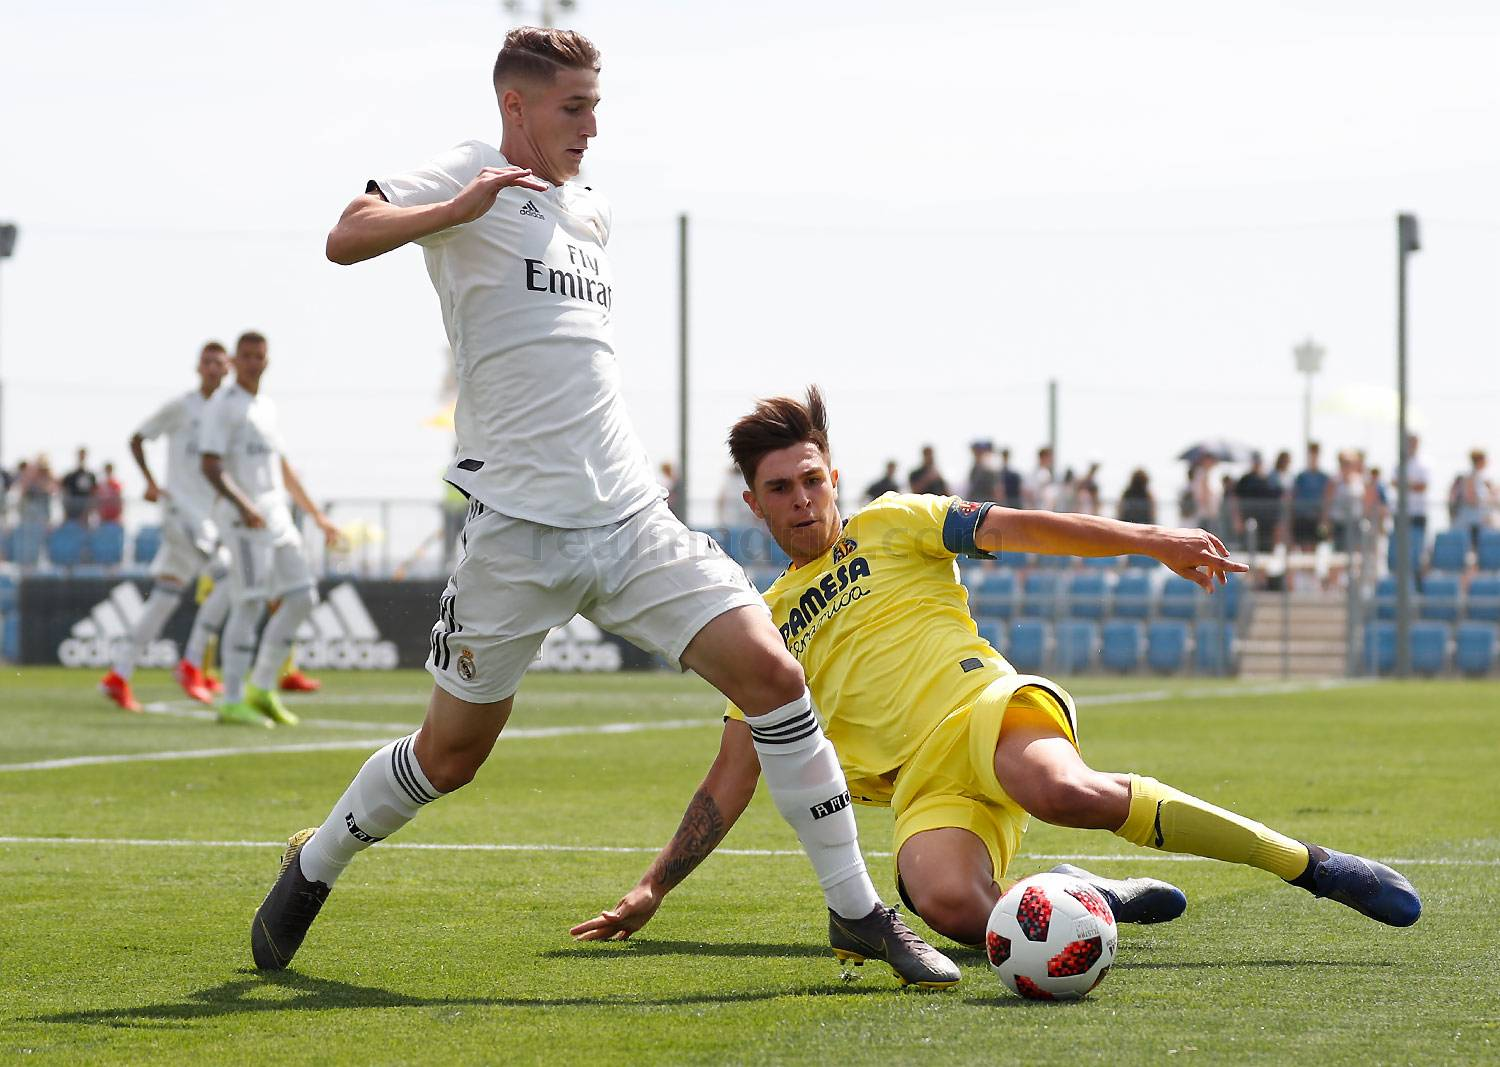 Real Madrid - Juvenil A - Villarreal - 23-06-2019